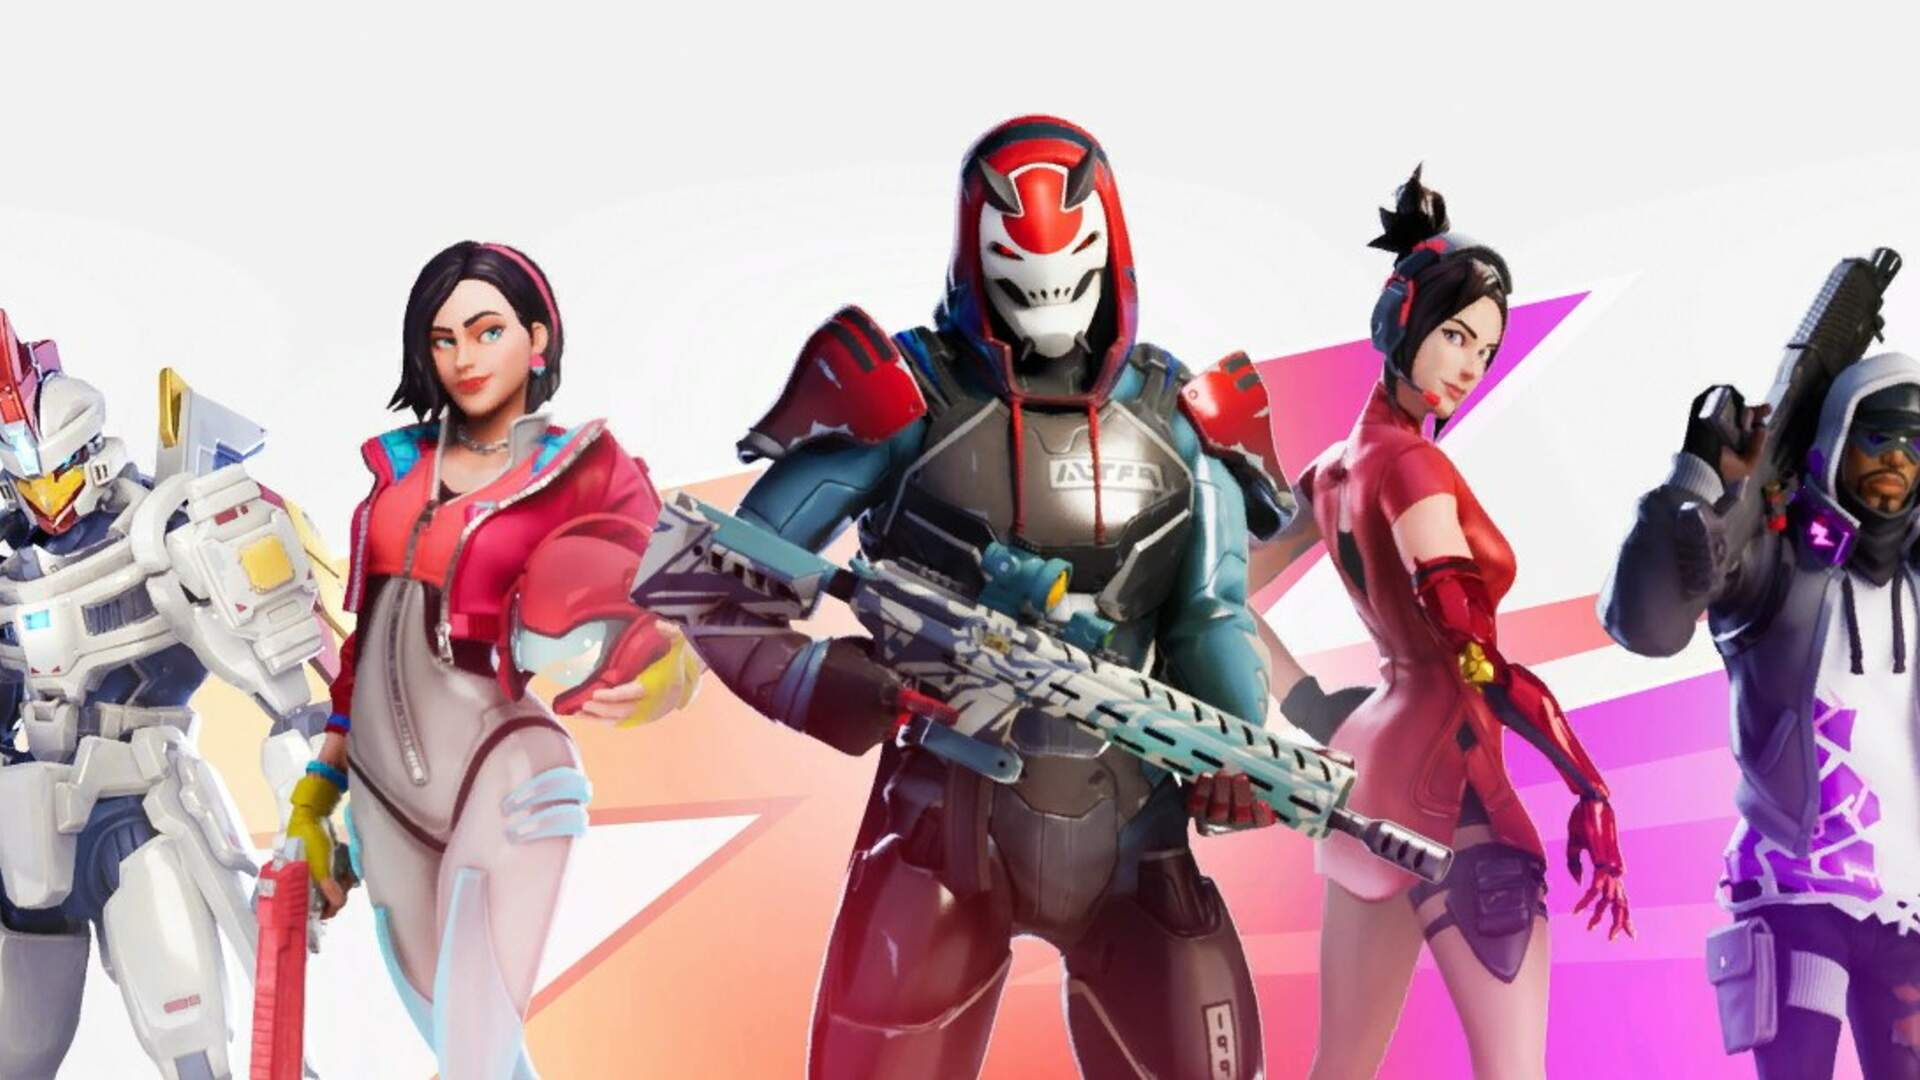 Fortnite Week 4 Challenges - How to Complete All Fortnite Season 9, Week 4 Battle Pass Challenges